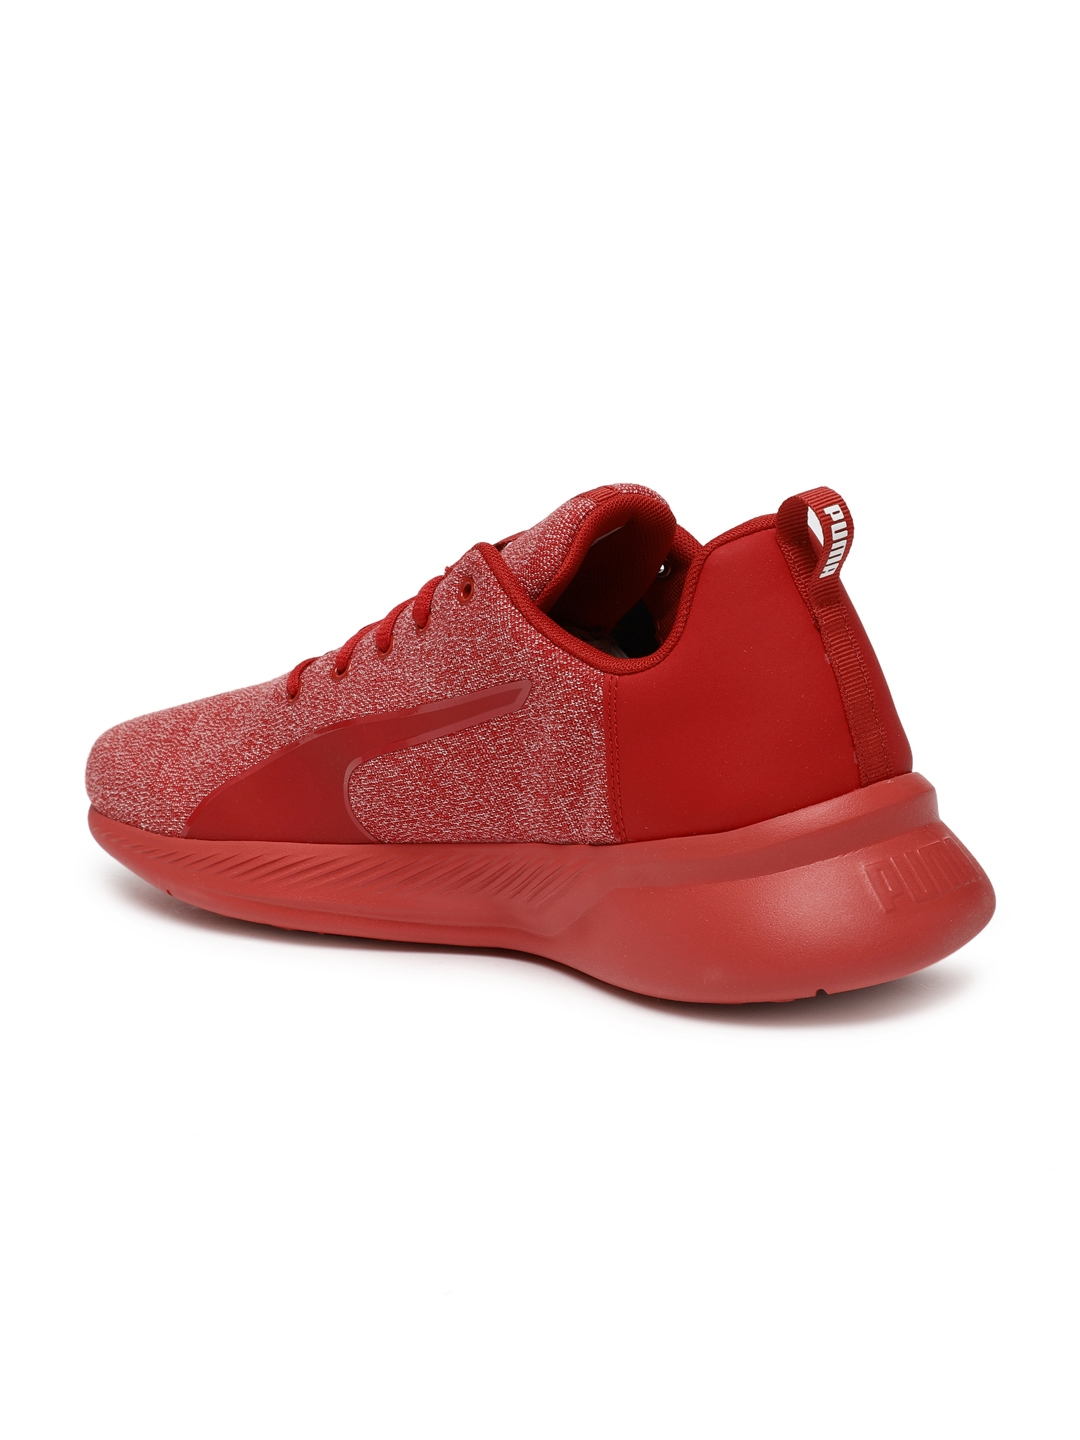 7c0f0c2d3a3 Buy Puma Men Red Tishatsu Knitted Training Shoes - Sports Shoes for ...